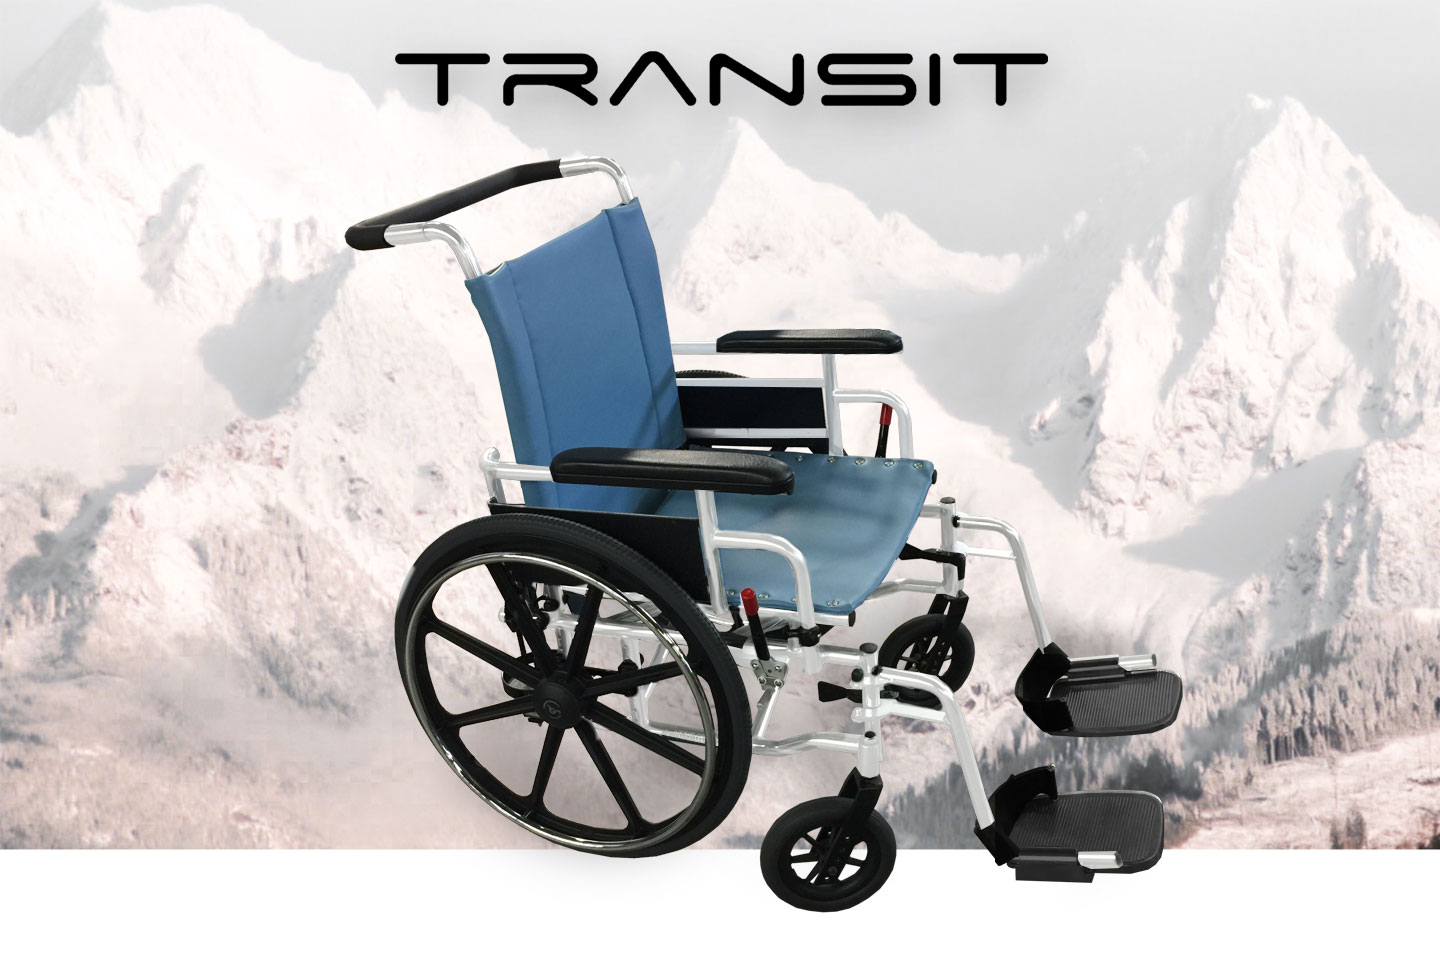 Our NEW Transit Wheelchair!